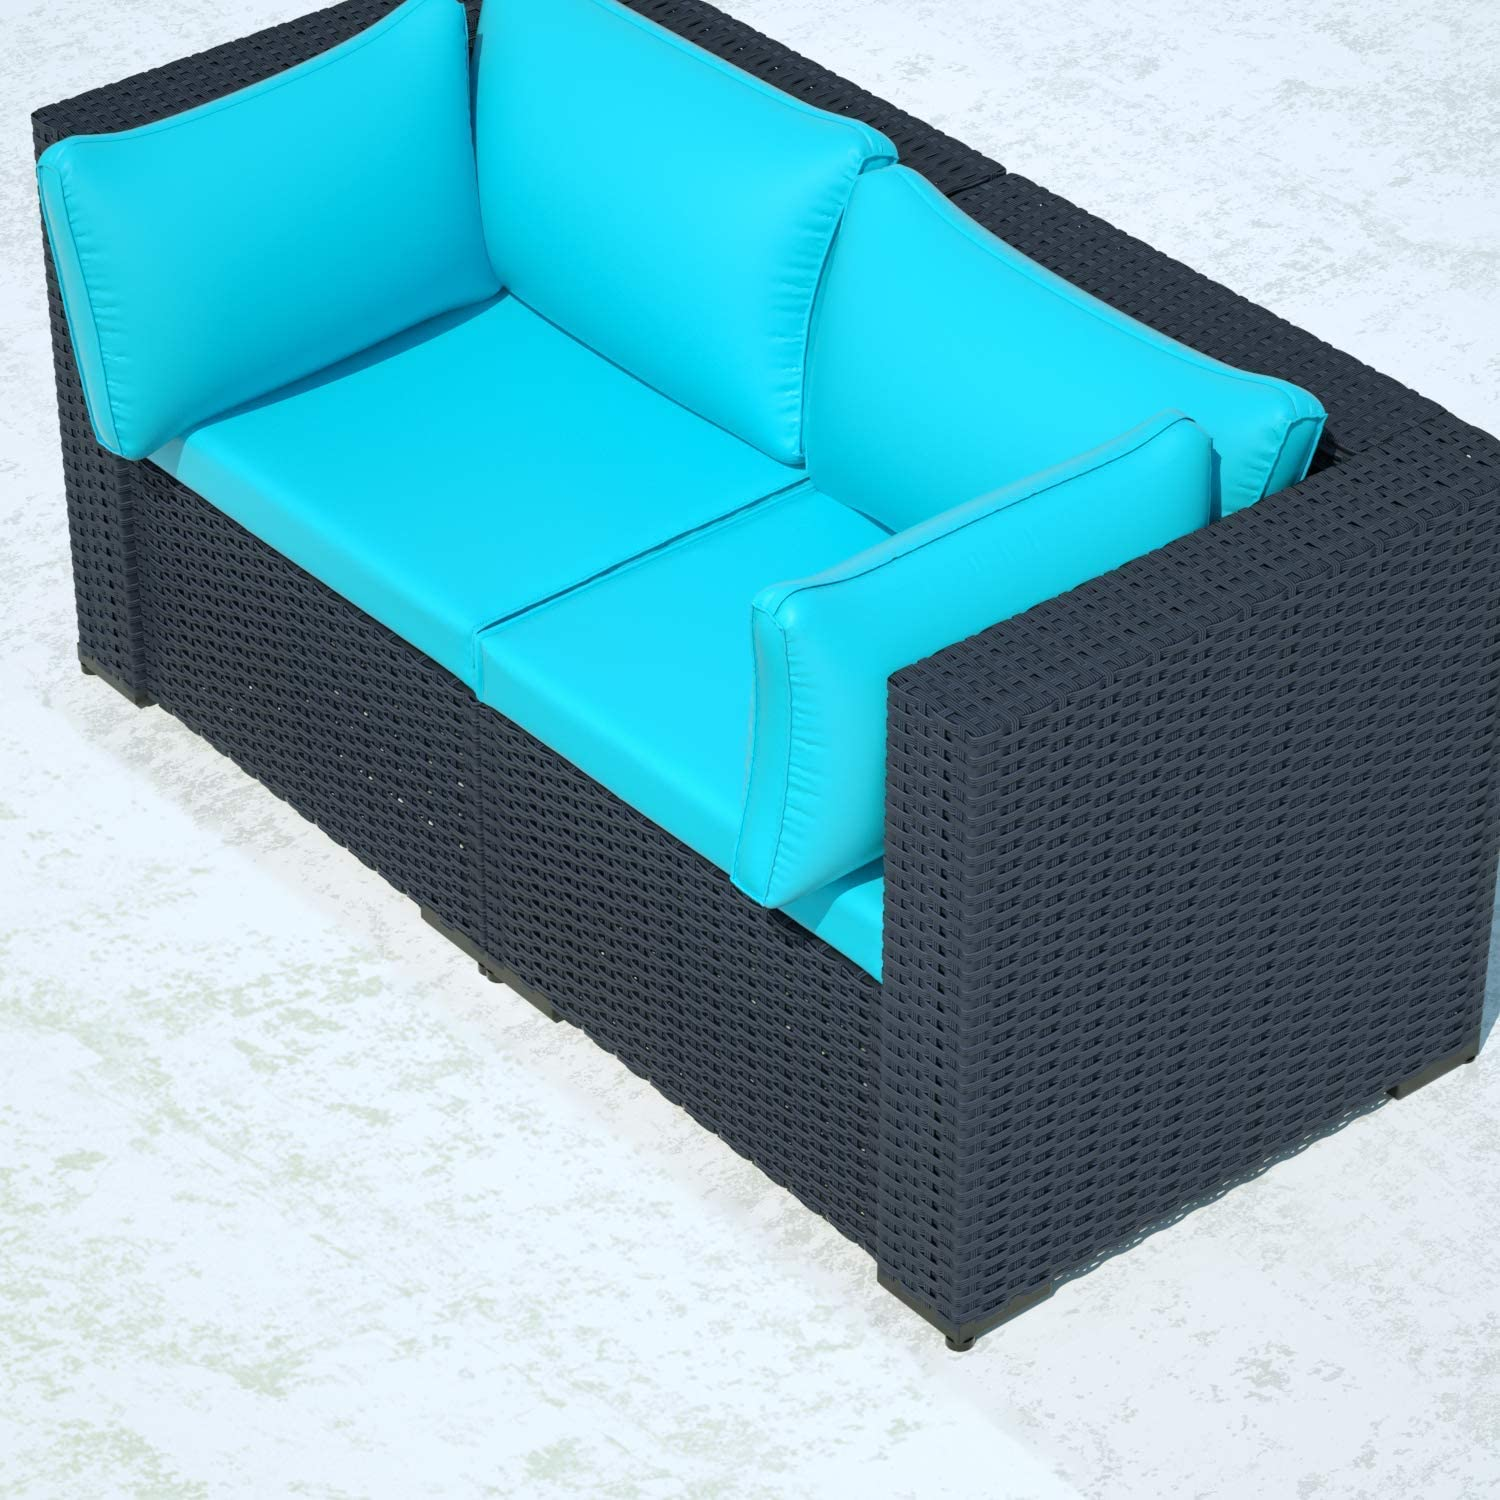 ALAULM 2 Piece Outdoor Patio Furniture Set Modular Loveseat Rattan Sectional Sofa Set All Weather Deck Couch PE Black Wicker Backyard Patio Conversation Chair with Thick Blue Cushions